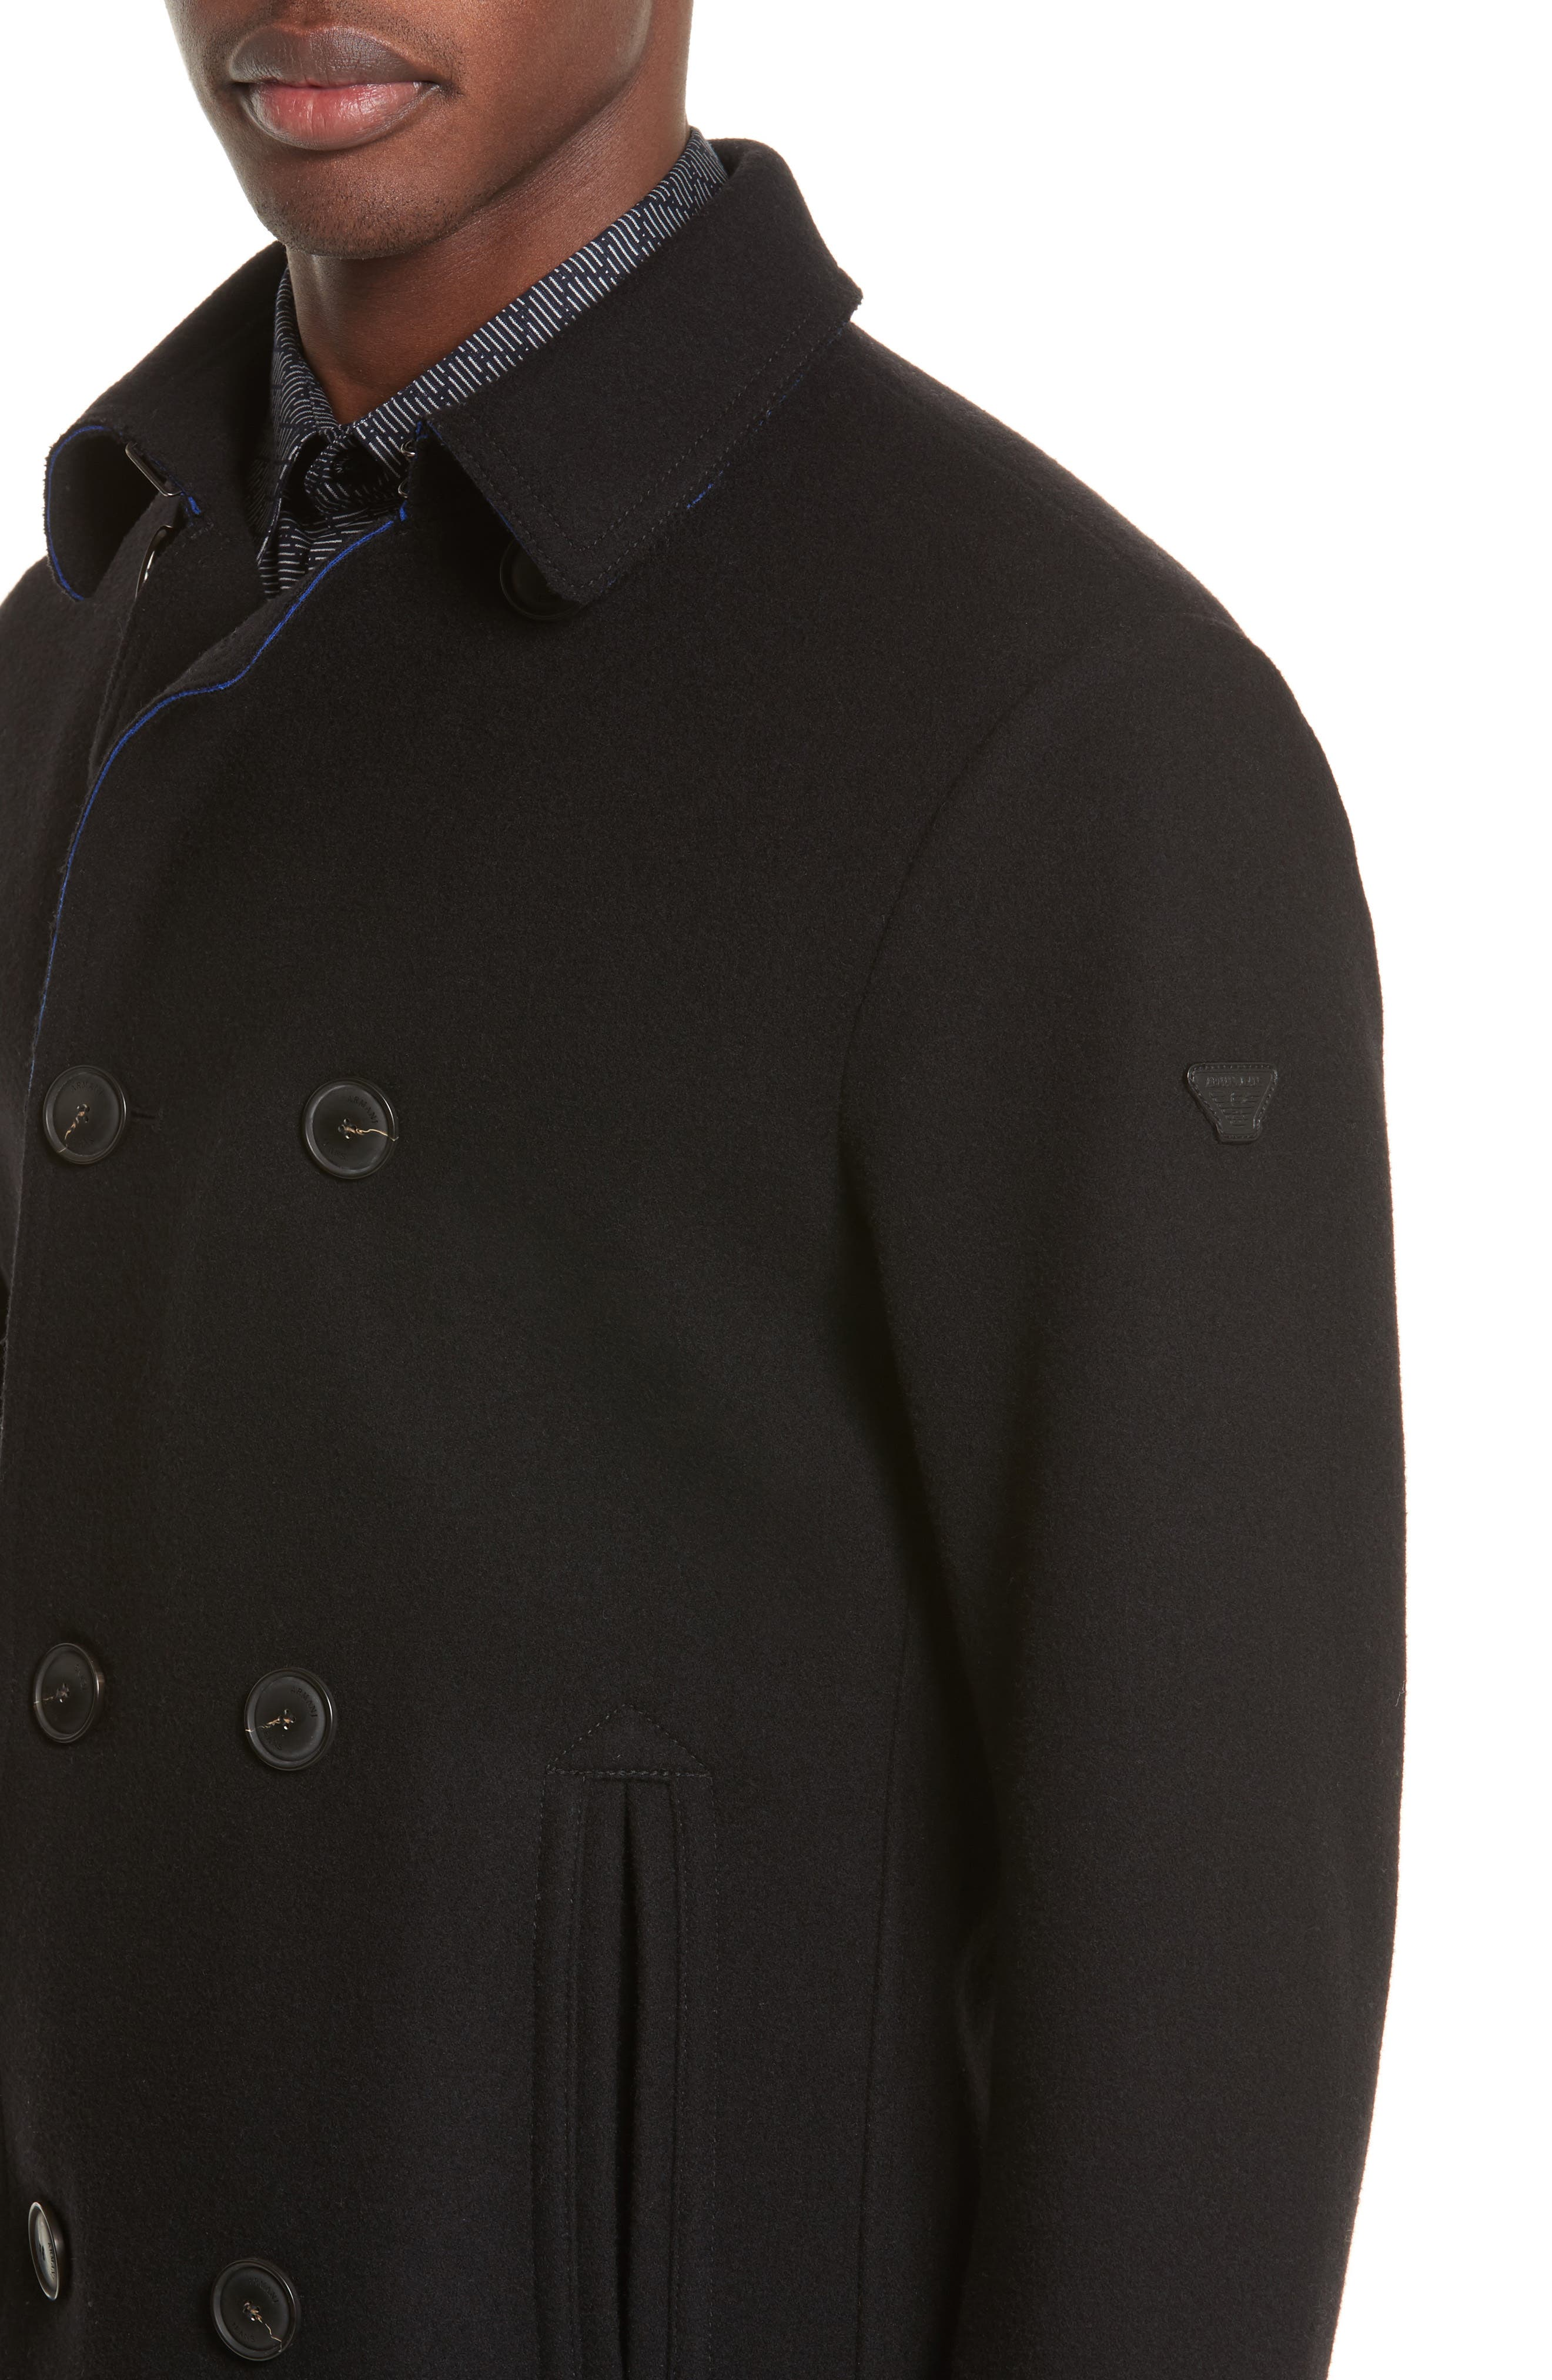 Double Breasted Peacoat,                             Alternate thumbnail 4, color,                             Black